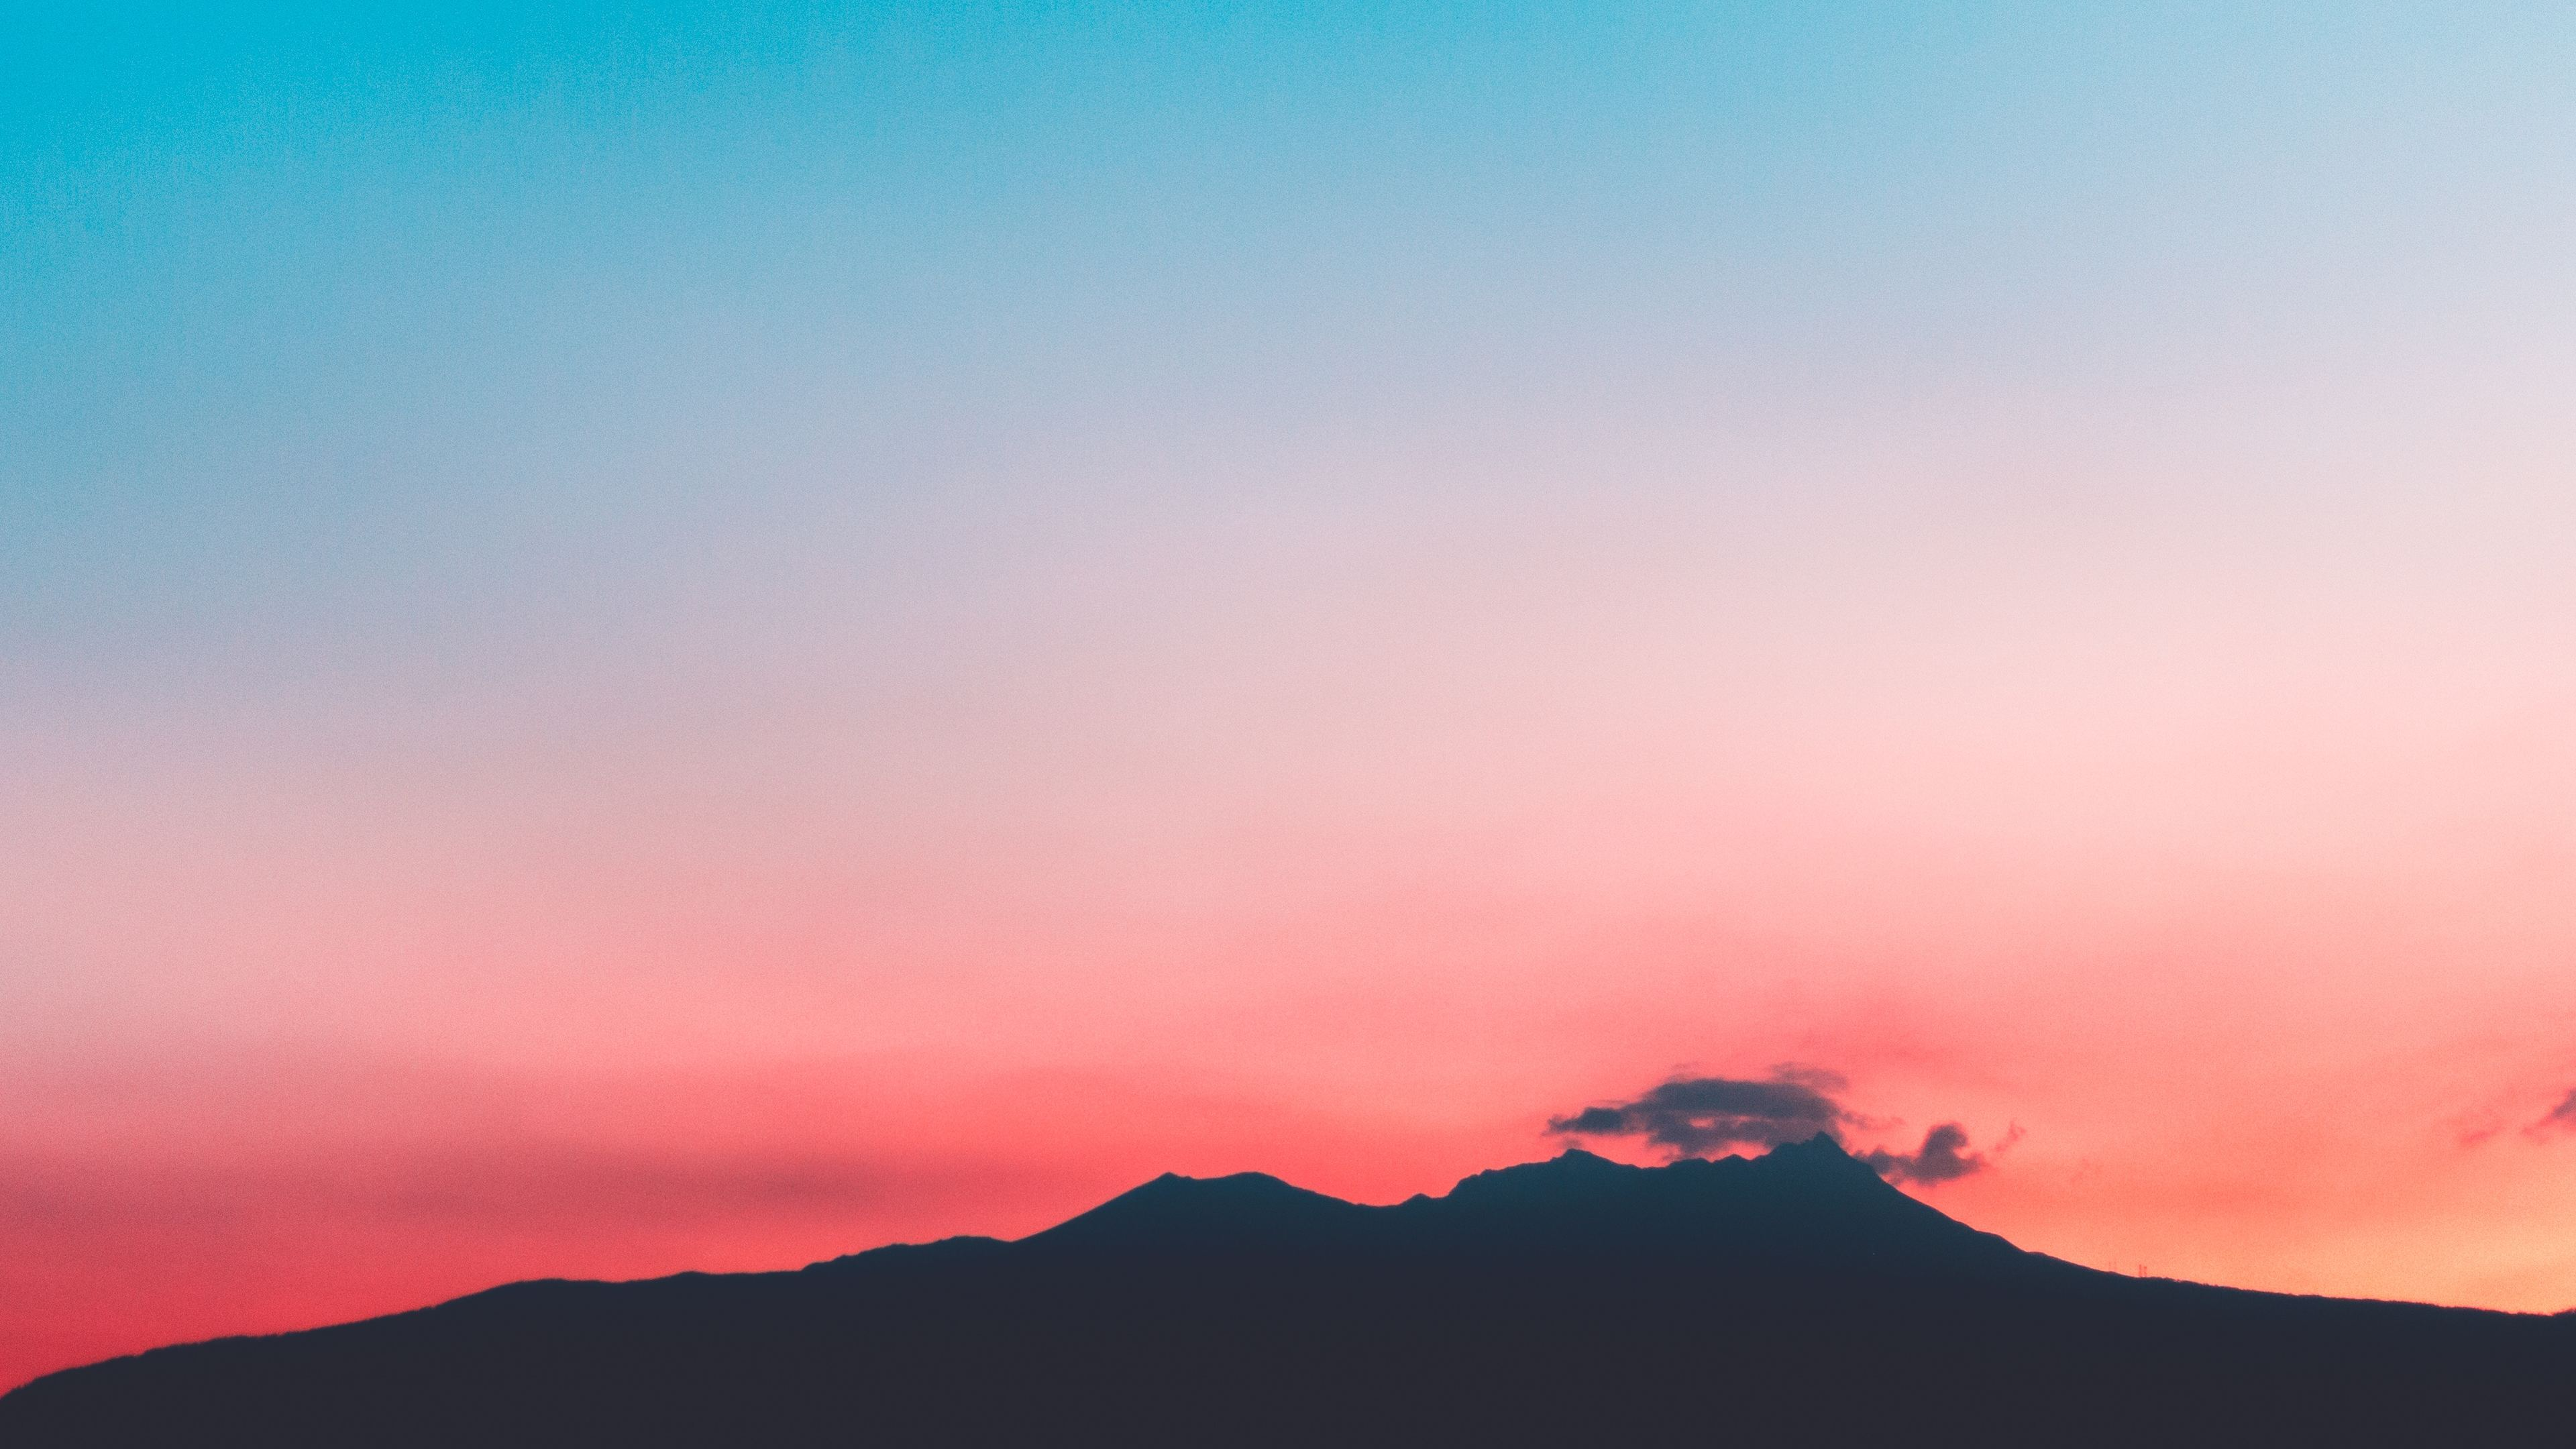 volcano pink sunset hill 4k 1551643449 - Volcano Pink Sunset Hill 4k - sunset wallpapers, nature wallpapers, mountains wallpapers, hd-wallpapers, 4k-wallpapers